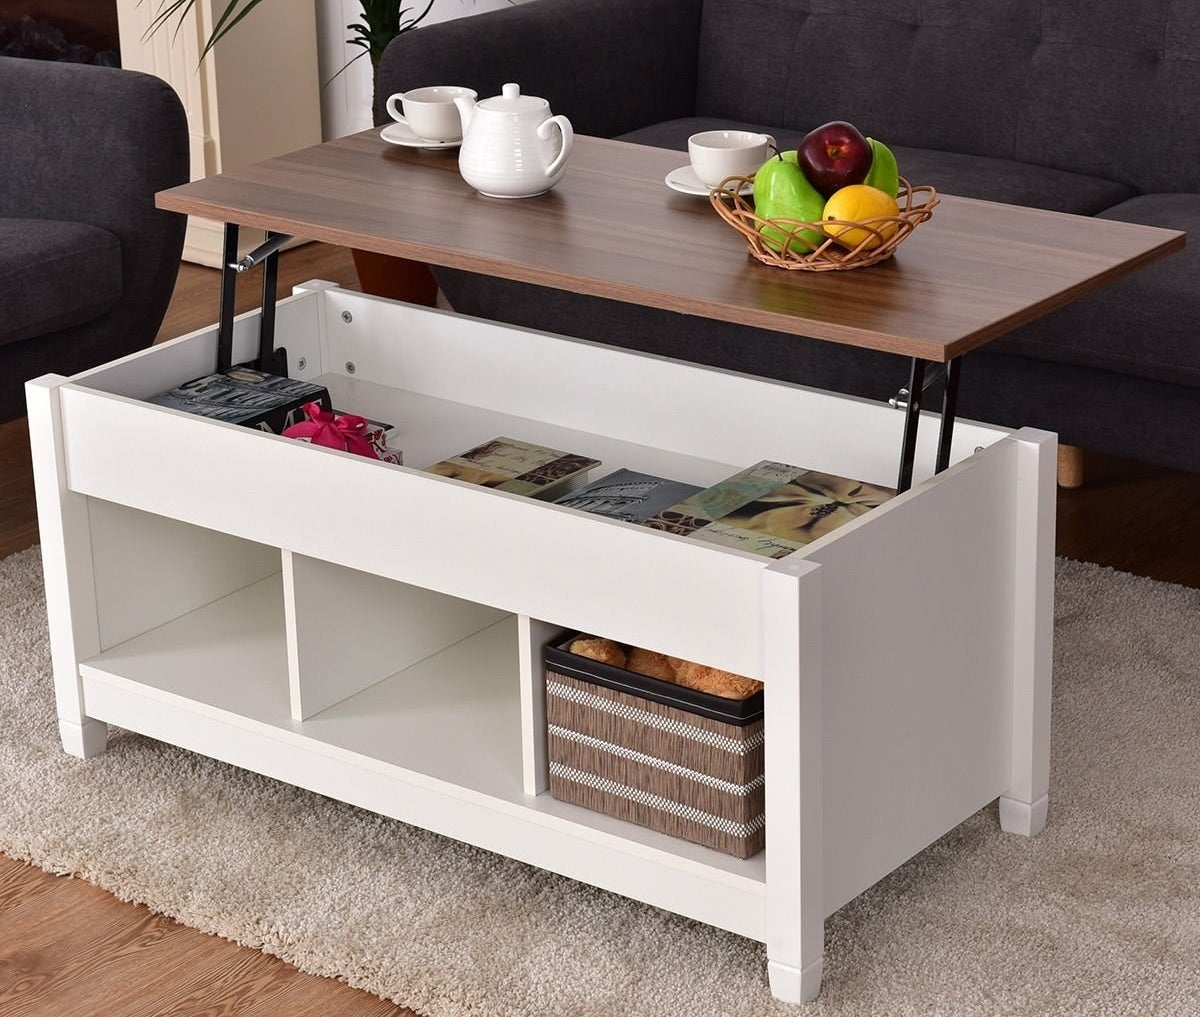 the lift top coffee table opened with books and snacks inside